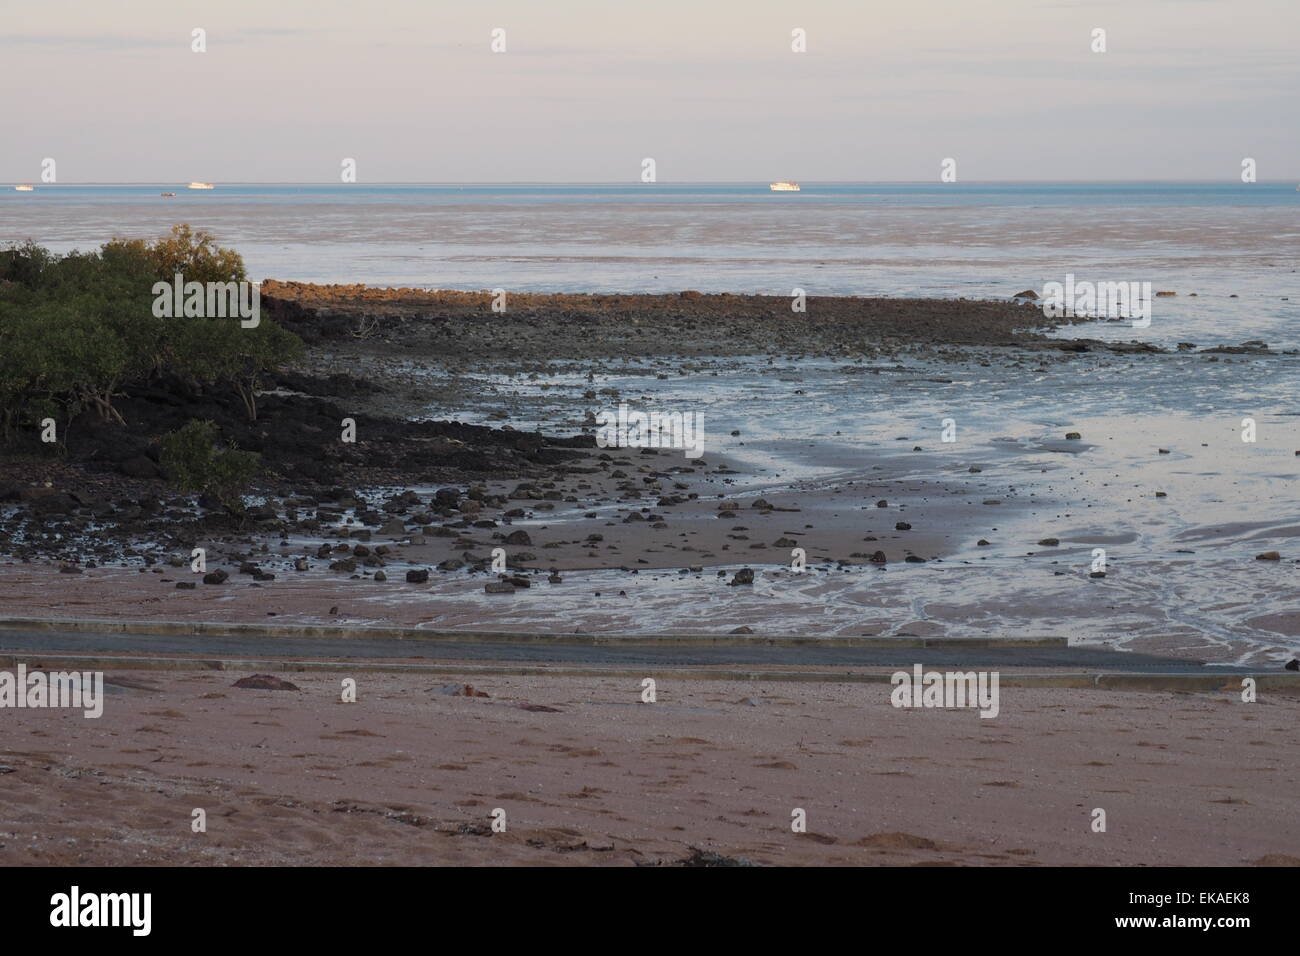 The mudflats of Roebuck Bay at low tide. - Stock Image